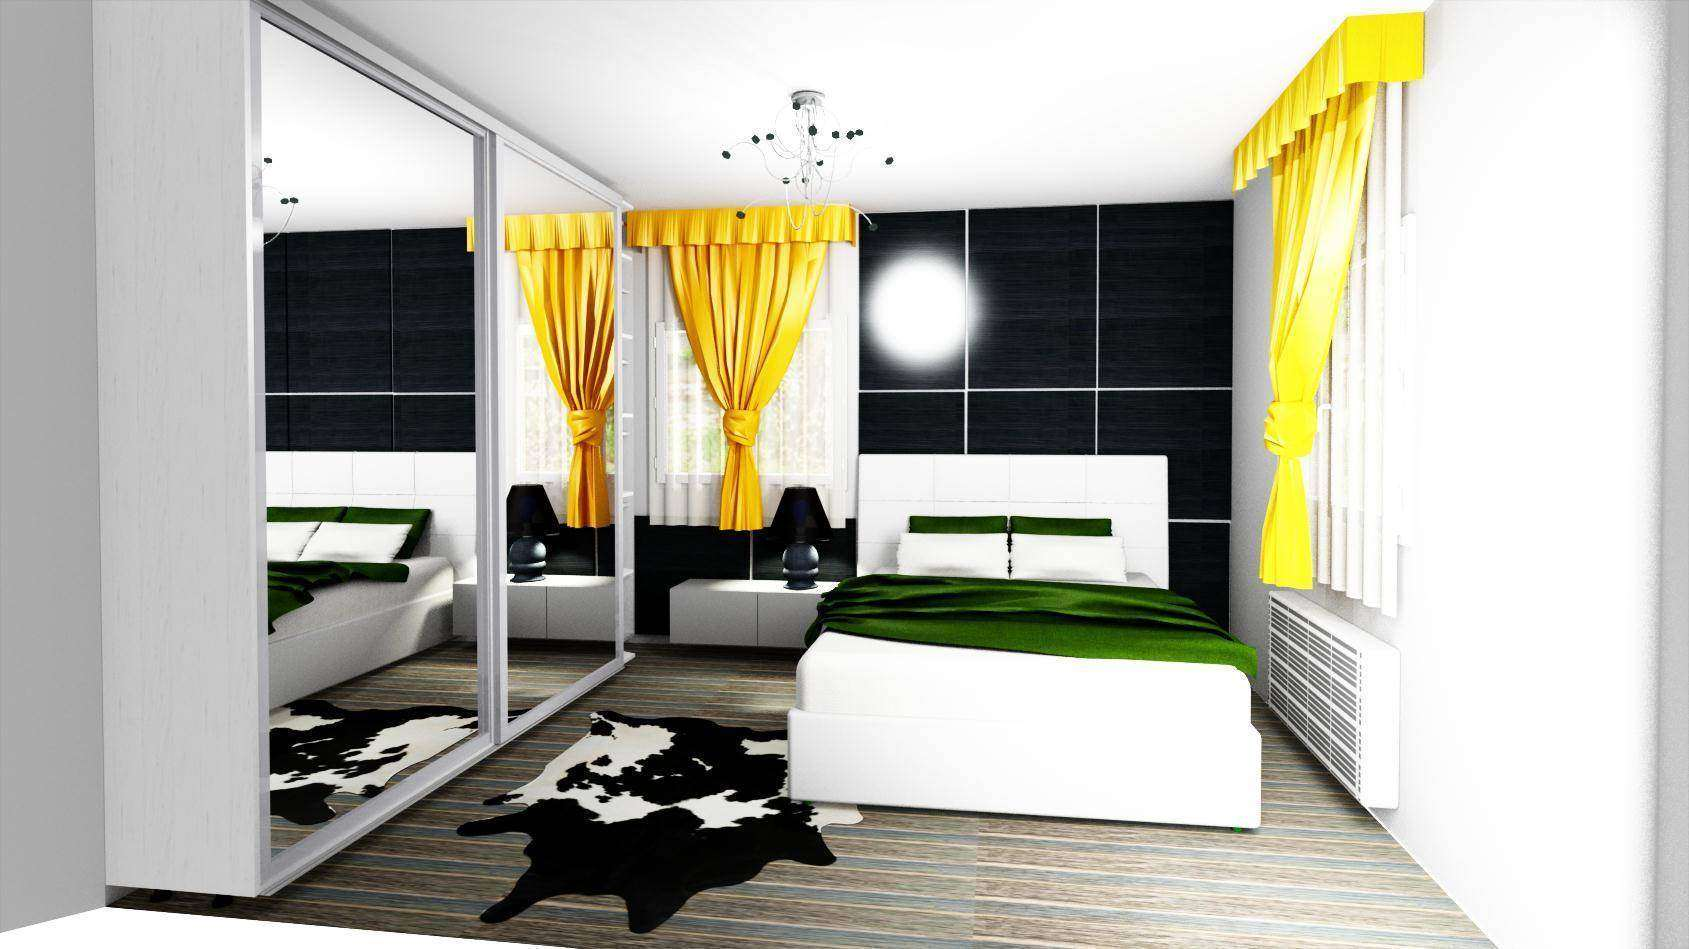 <a href=&quot;amenajare dormitor matrimonial - desing interior&quot;>design interior dormitor matrimonial<img src='http://www.unican.ro/wp-content/themes/vita/img/dreapta.png' class='pull-right hidden-xs' style='margin-right:-10px;margin-top:-10px; max-height:41px'></a>